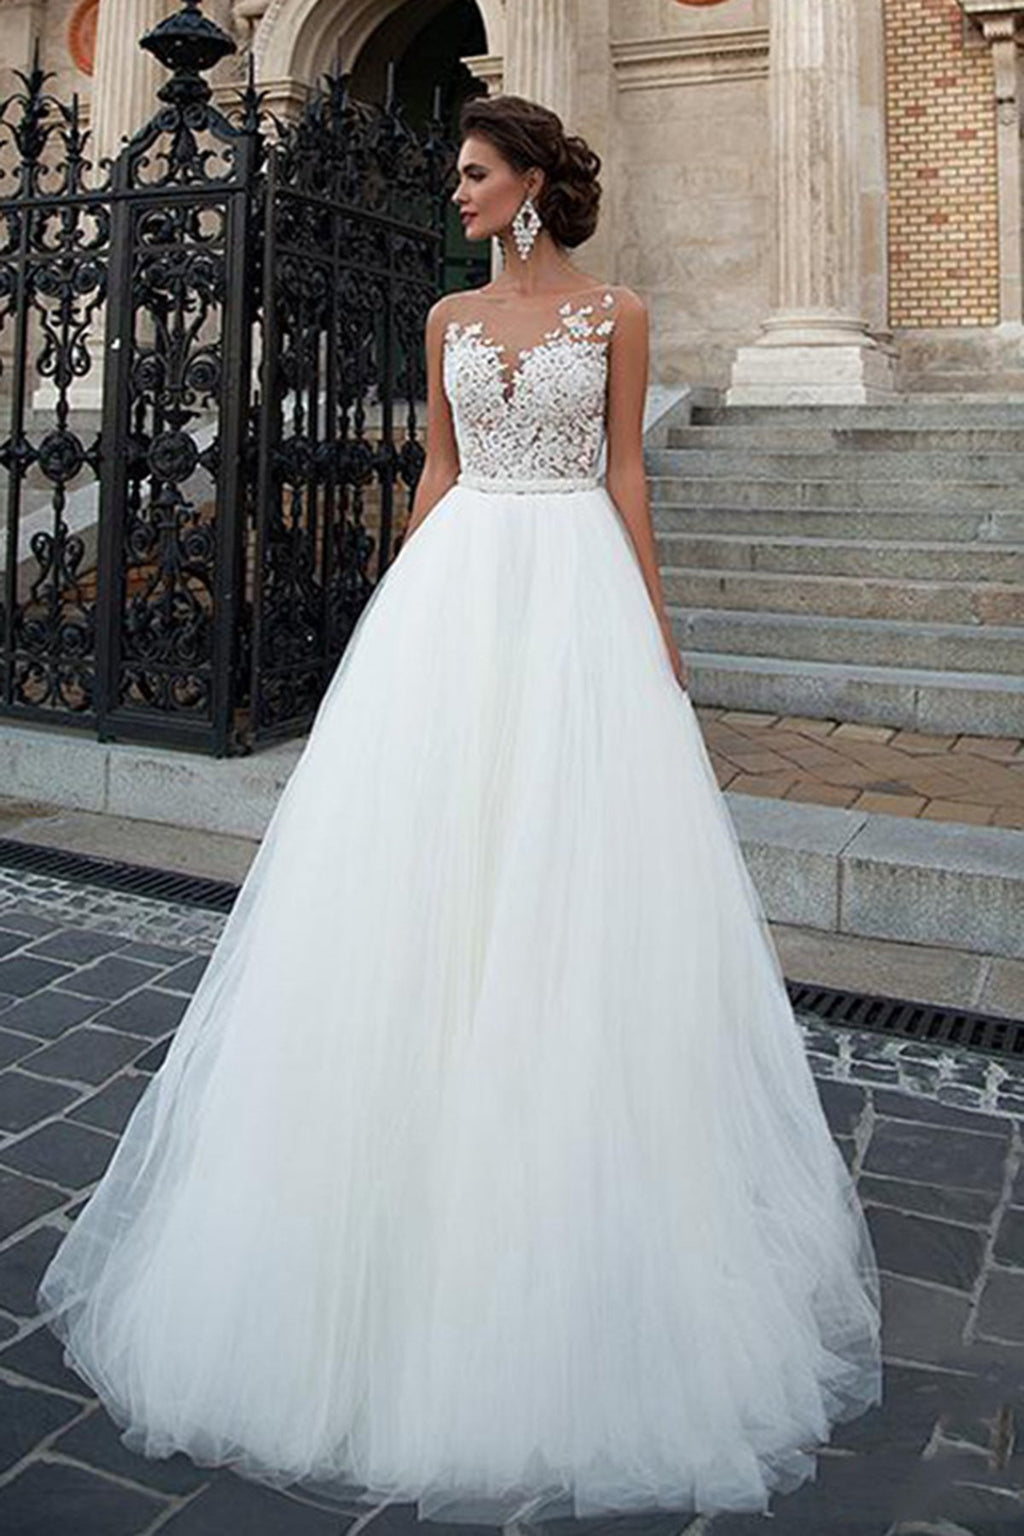 Beach Tulle Lace Applique Wedding Dress With Belt Wedding Dress US 2 Off-White